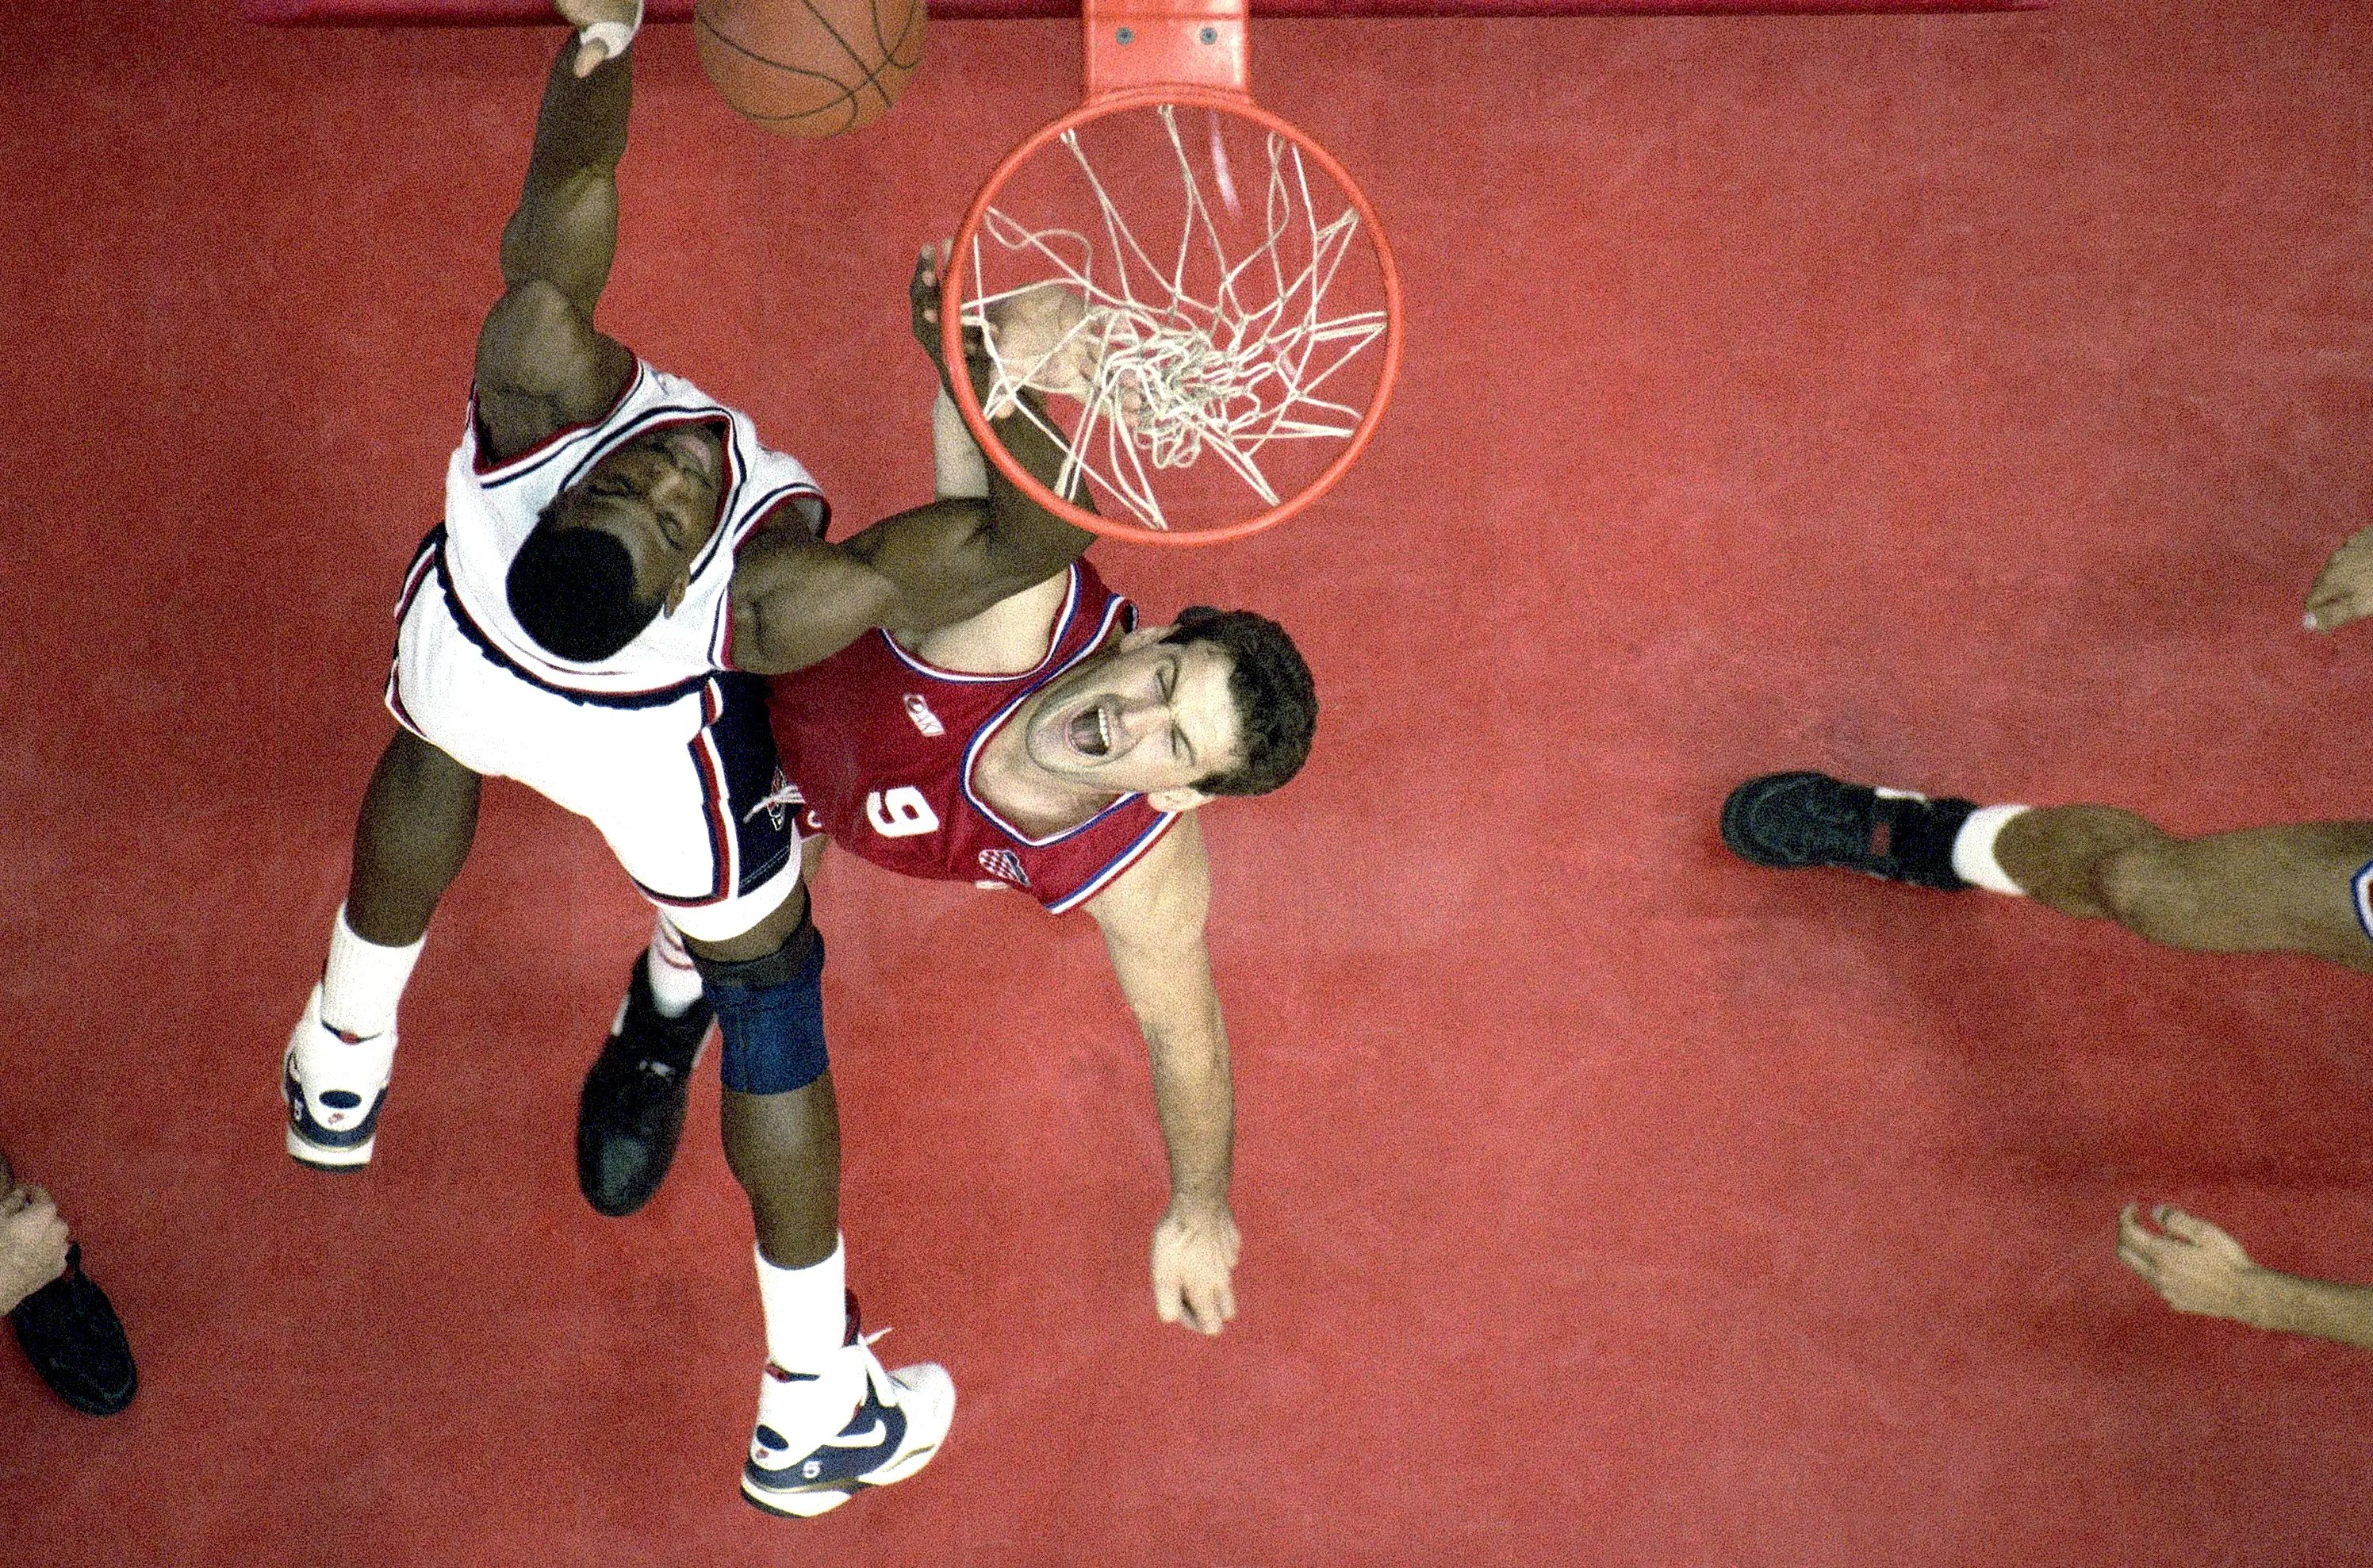 "Barcelona, 1992: The USA's David Robinson crushed Croatia's Franjo Arapovic on his way to the hoop during his team's gold medal game. This was the first time NBA professionals — including Michael Jordan — had been chosen to play in the Olympics. They were called the ""Dream Team"" and sailed through to finals."